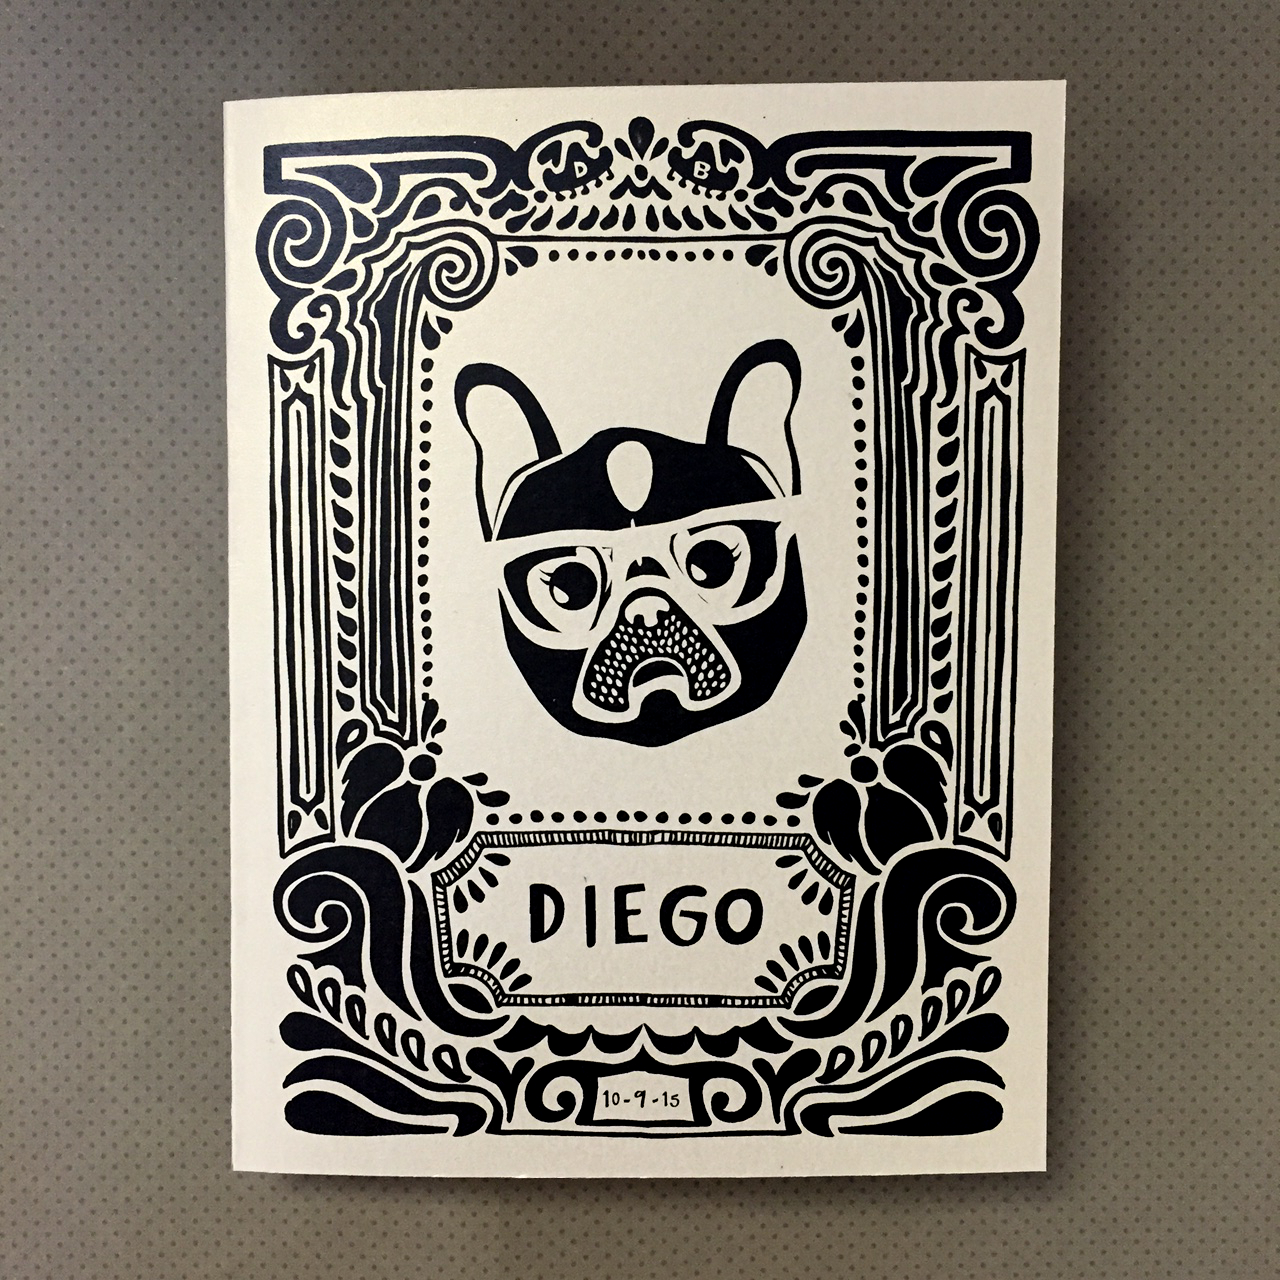 Diego1.png